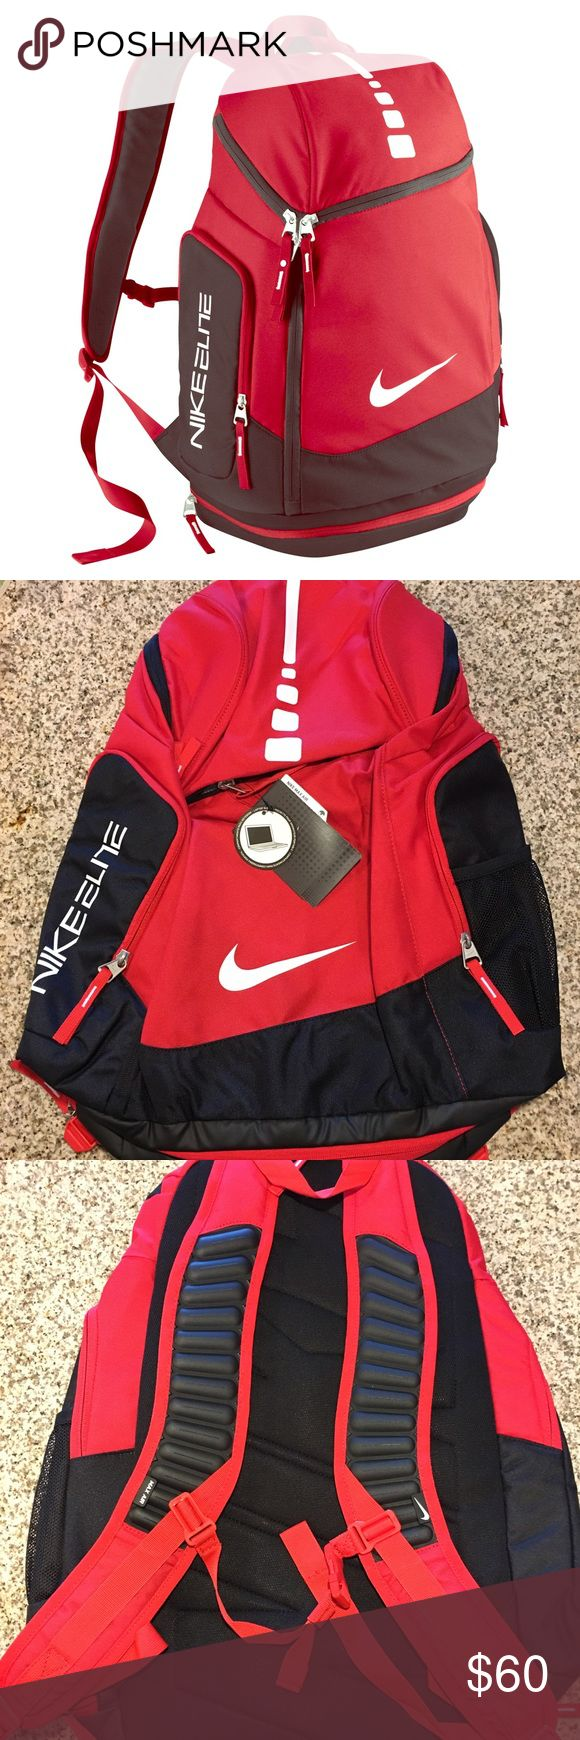 Nike Hoops Elite Max Backpack BRAND NEW. Orders Will be shipped out in 1 day from purchase. If you have any questions or need additional pictures call or text 520-262-1875. I have hundreds of items listed on my Ebay page so look out for them to make there way to my Poshmark page as well. Thanks! Nike Bags Backpacks